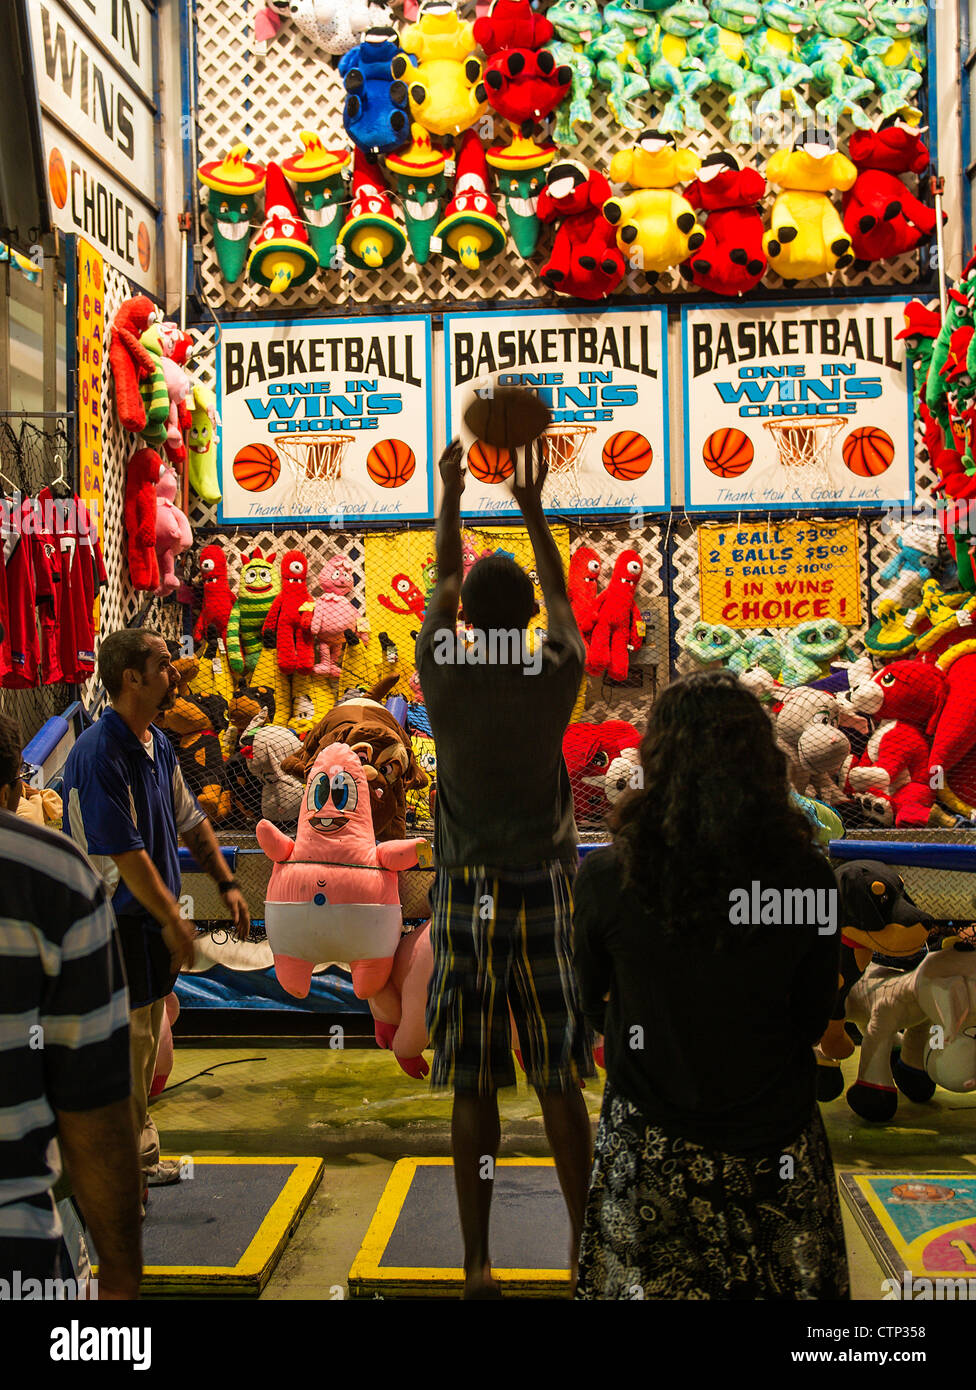 Basketball shoot, Atlantic City, New Jersey, USA - Stock Image